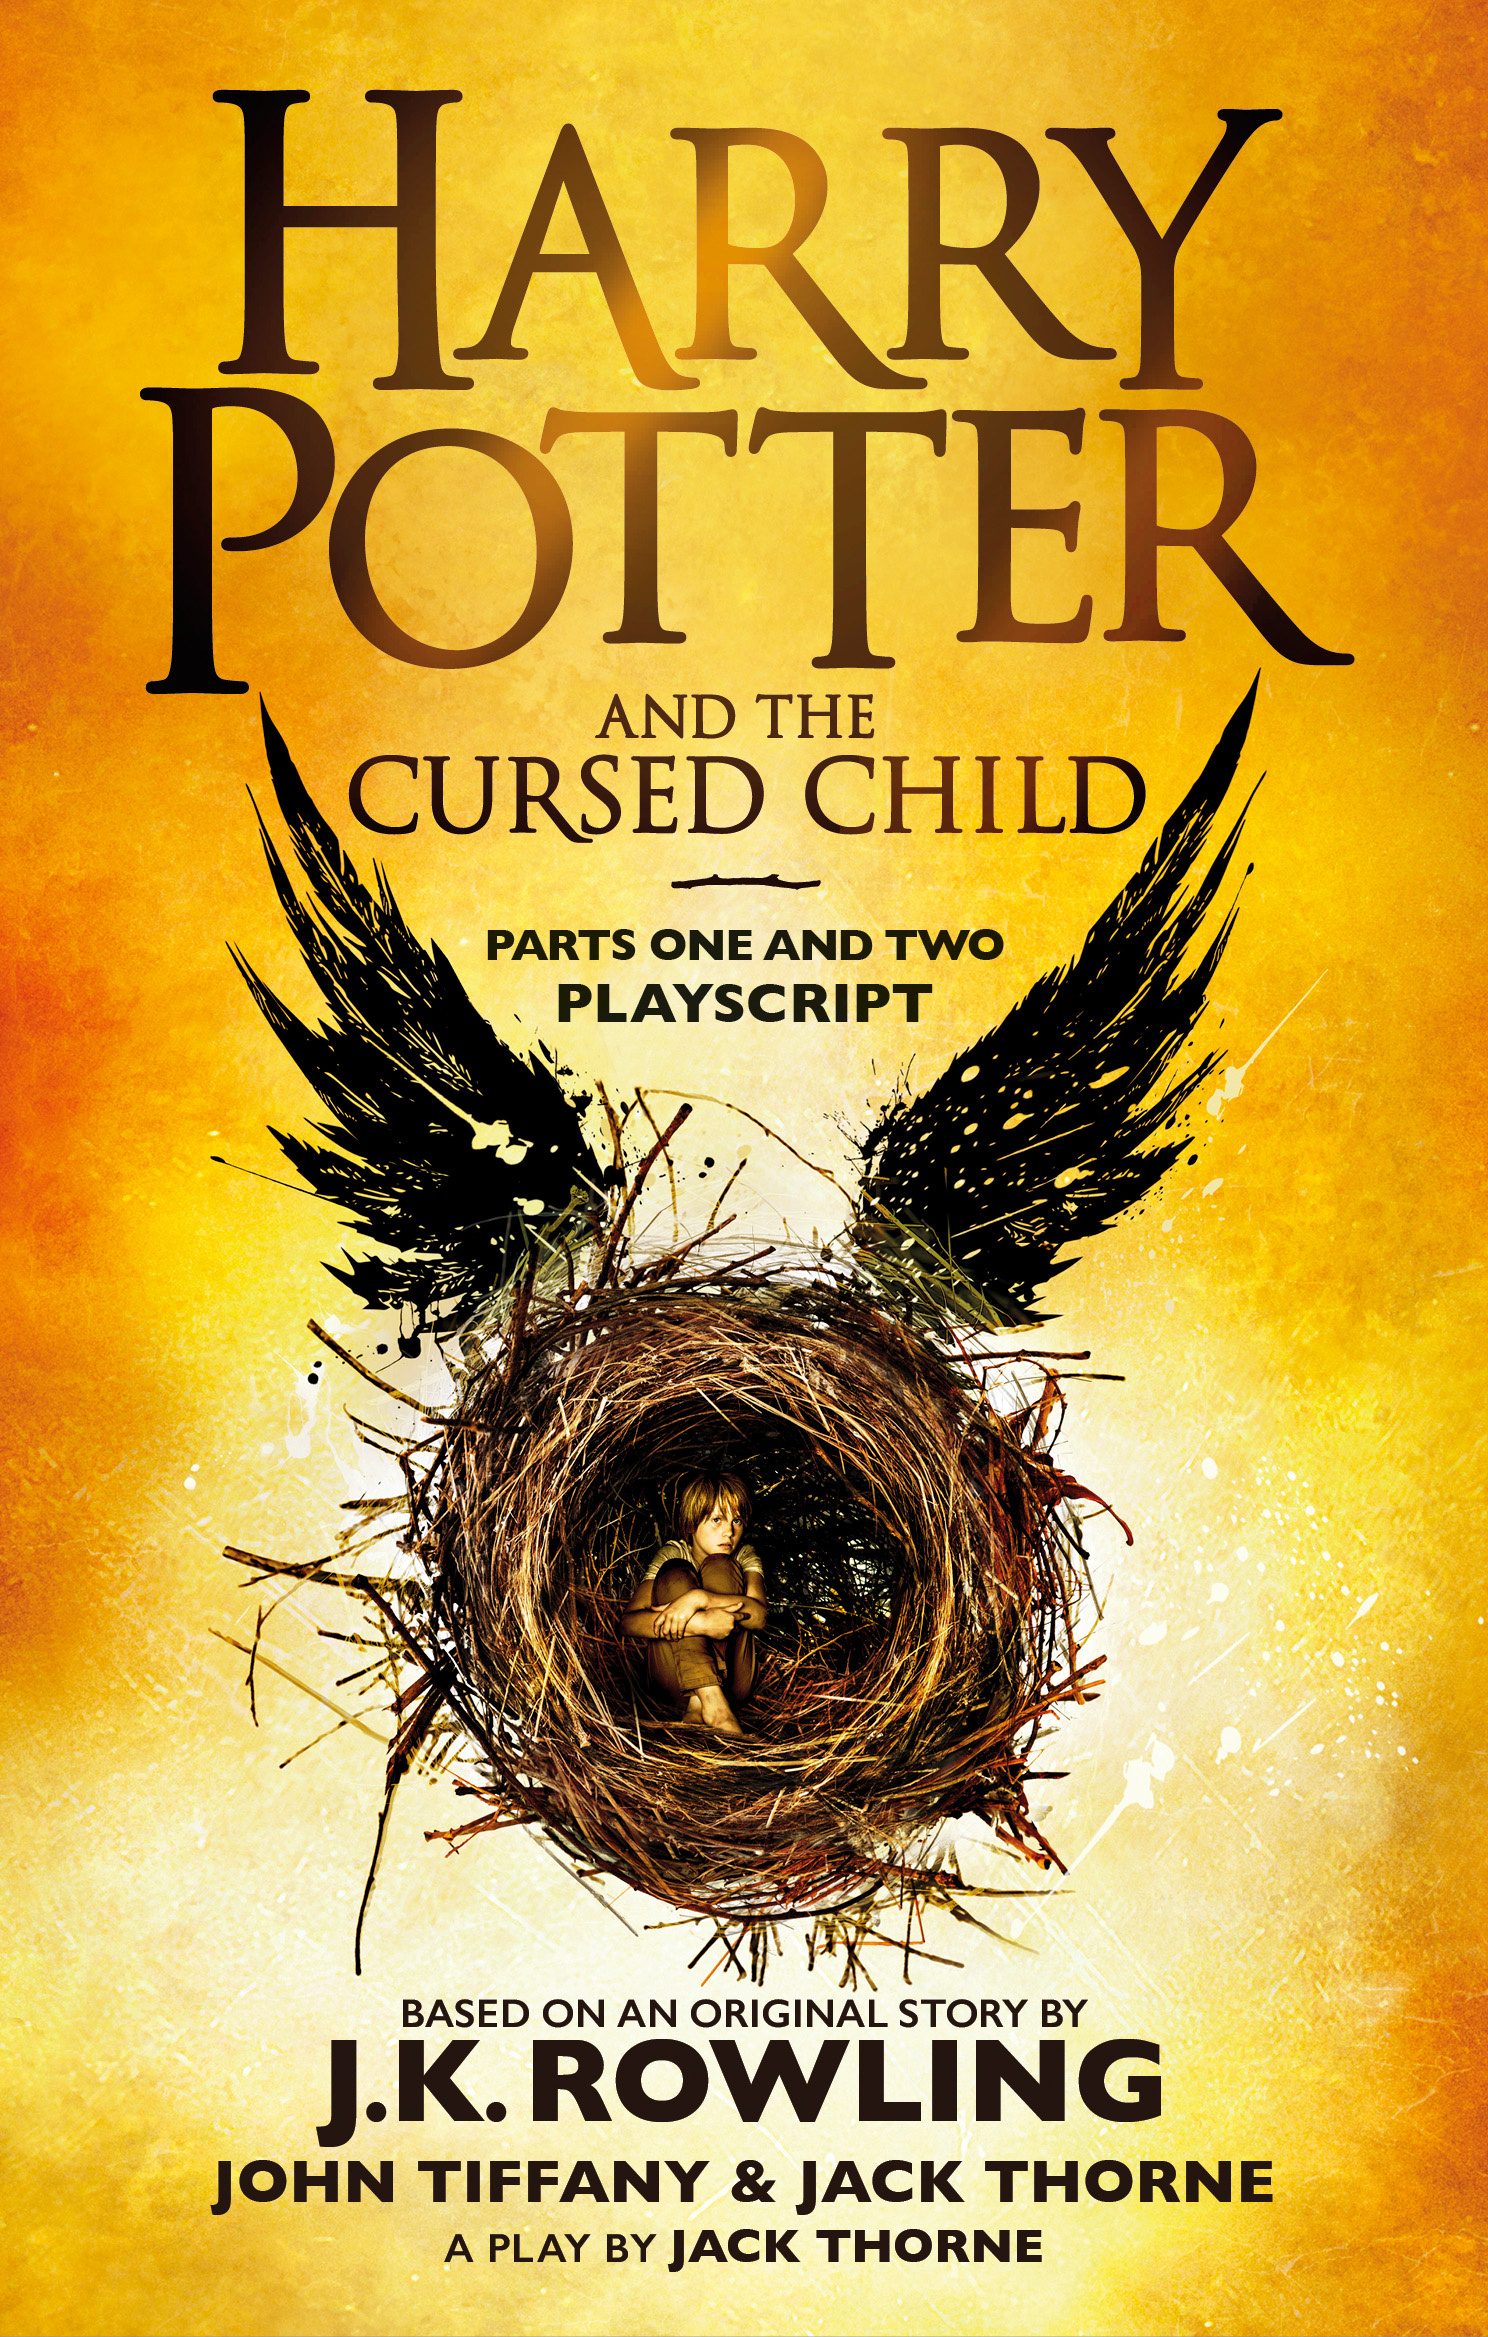 Harry Potter and the Cursed Child - Parts One & Two by J.K. Rowling, ISBN: 9780751565362